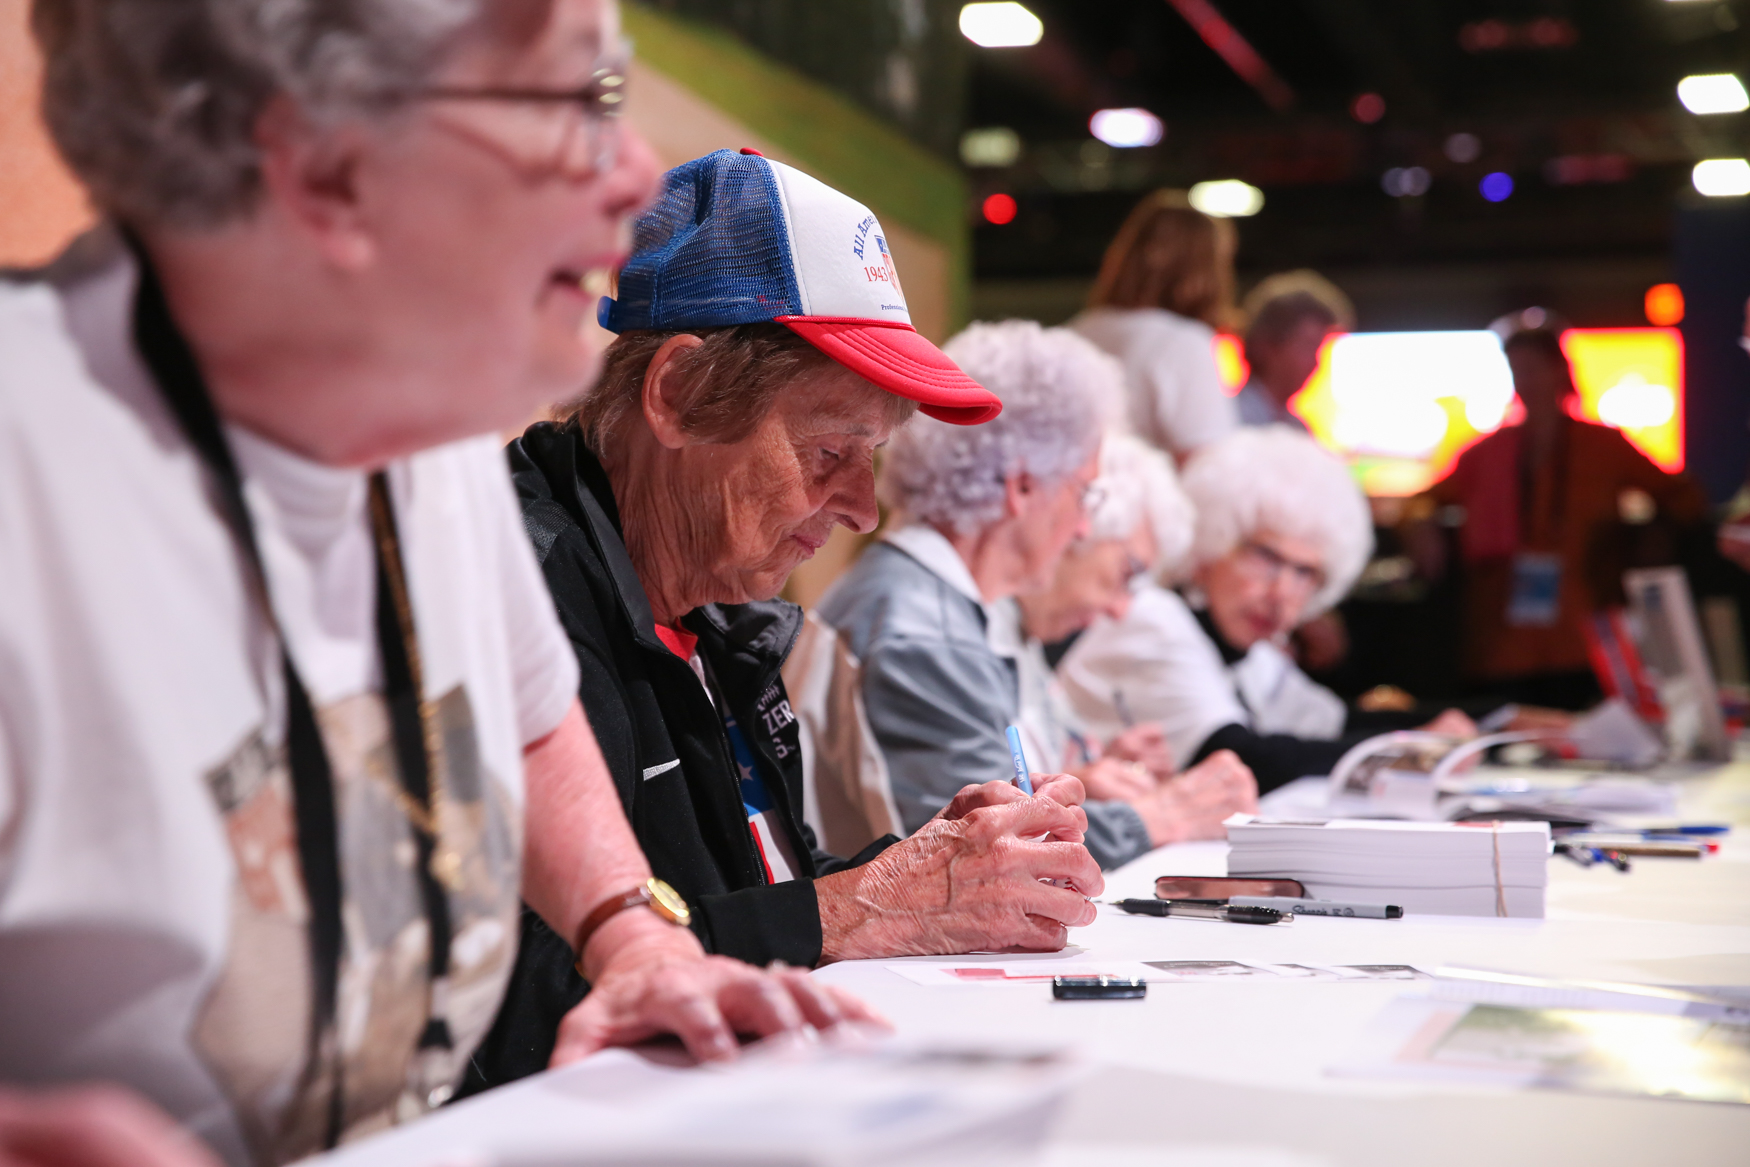 The women who helped inspire the movie 'A League of Their Own' are prominently featured at FanFest, offering up autographs and inspiration for the young women and girls.{ } (Amanda Andrade-Rhoades/DC Refined)